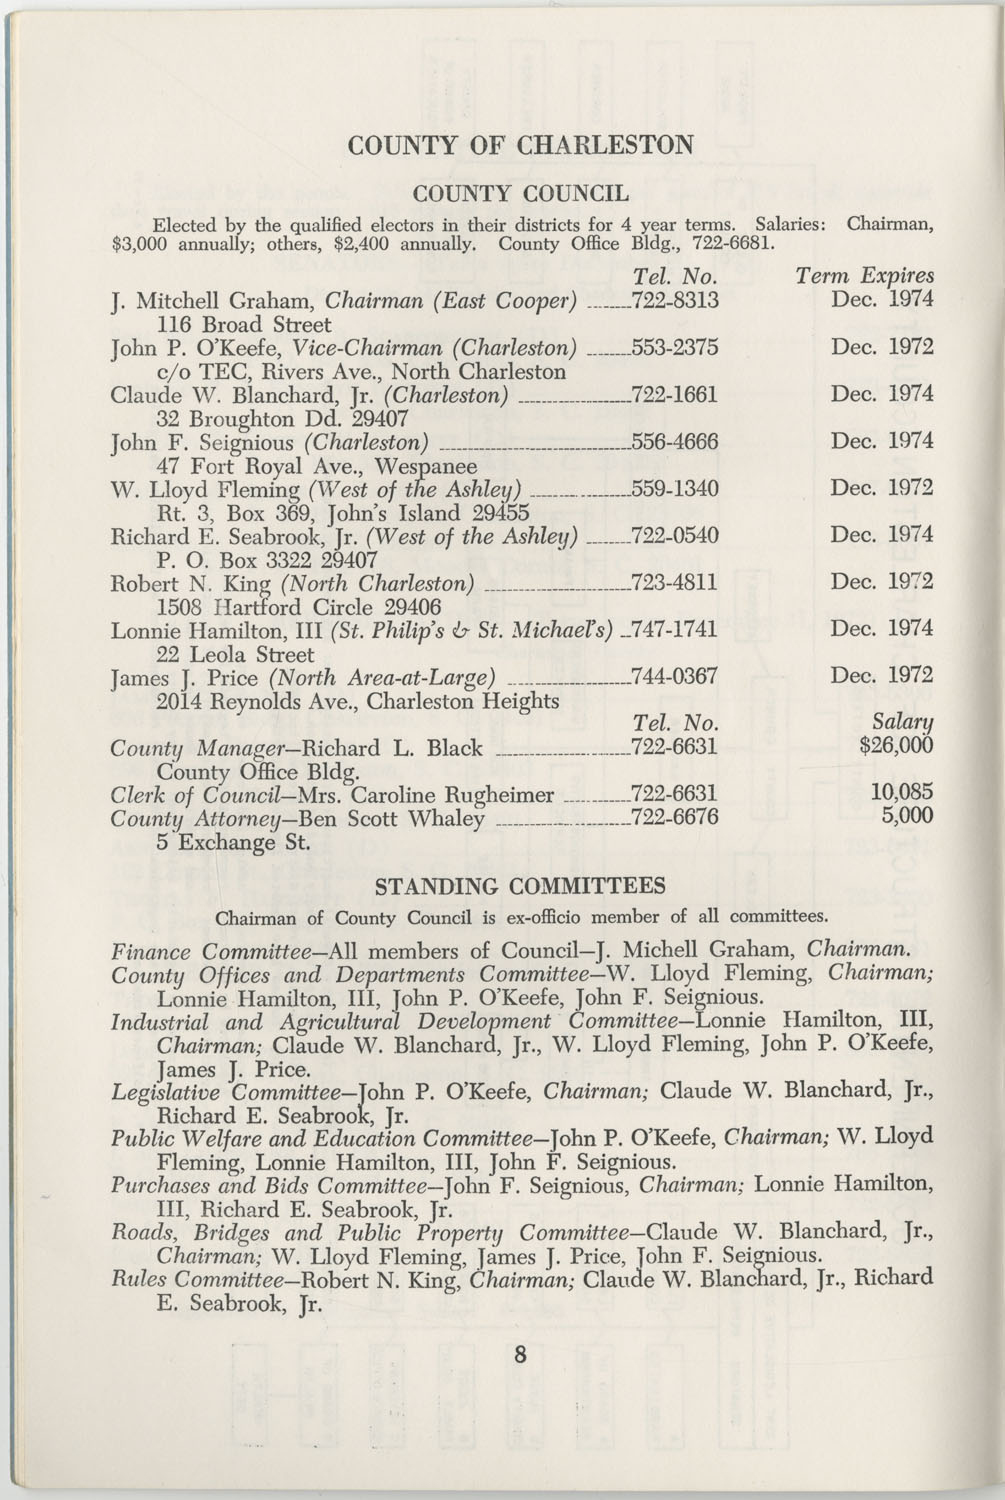 Directory of Public Officials, 1972-1973, Page 8